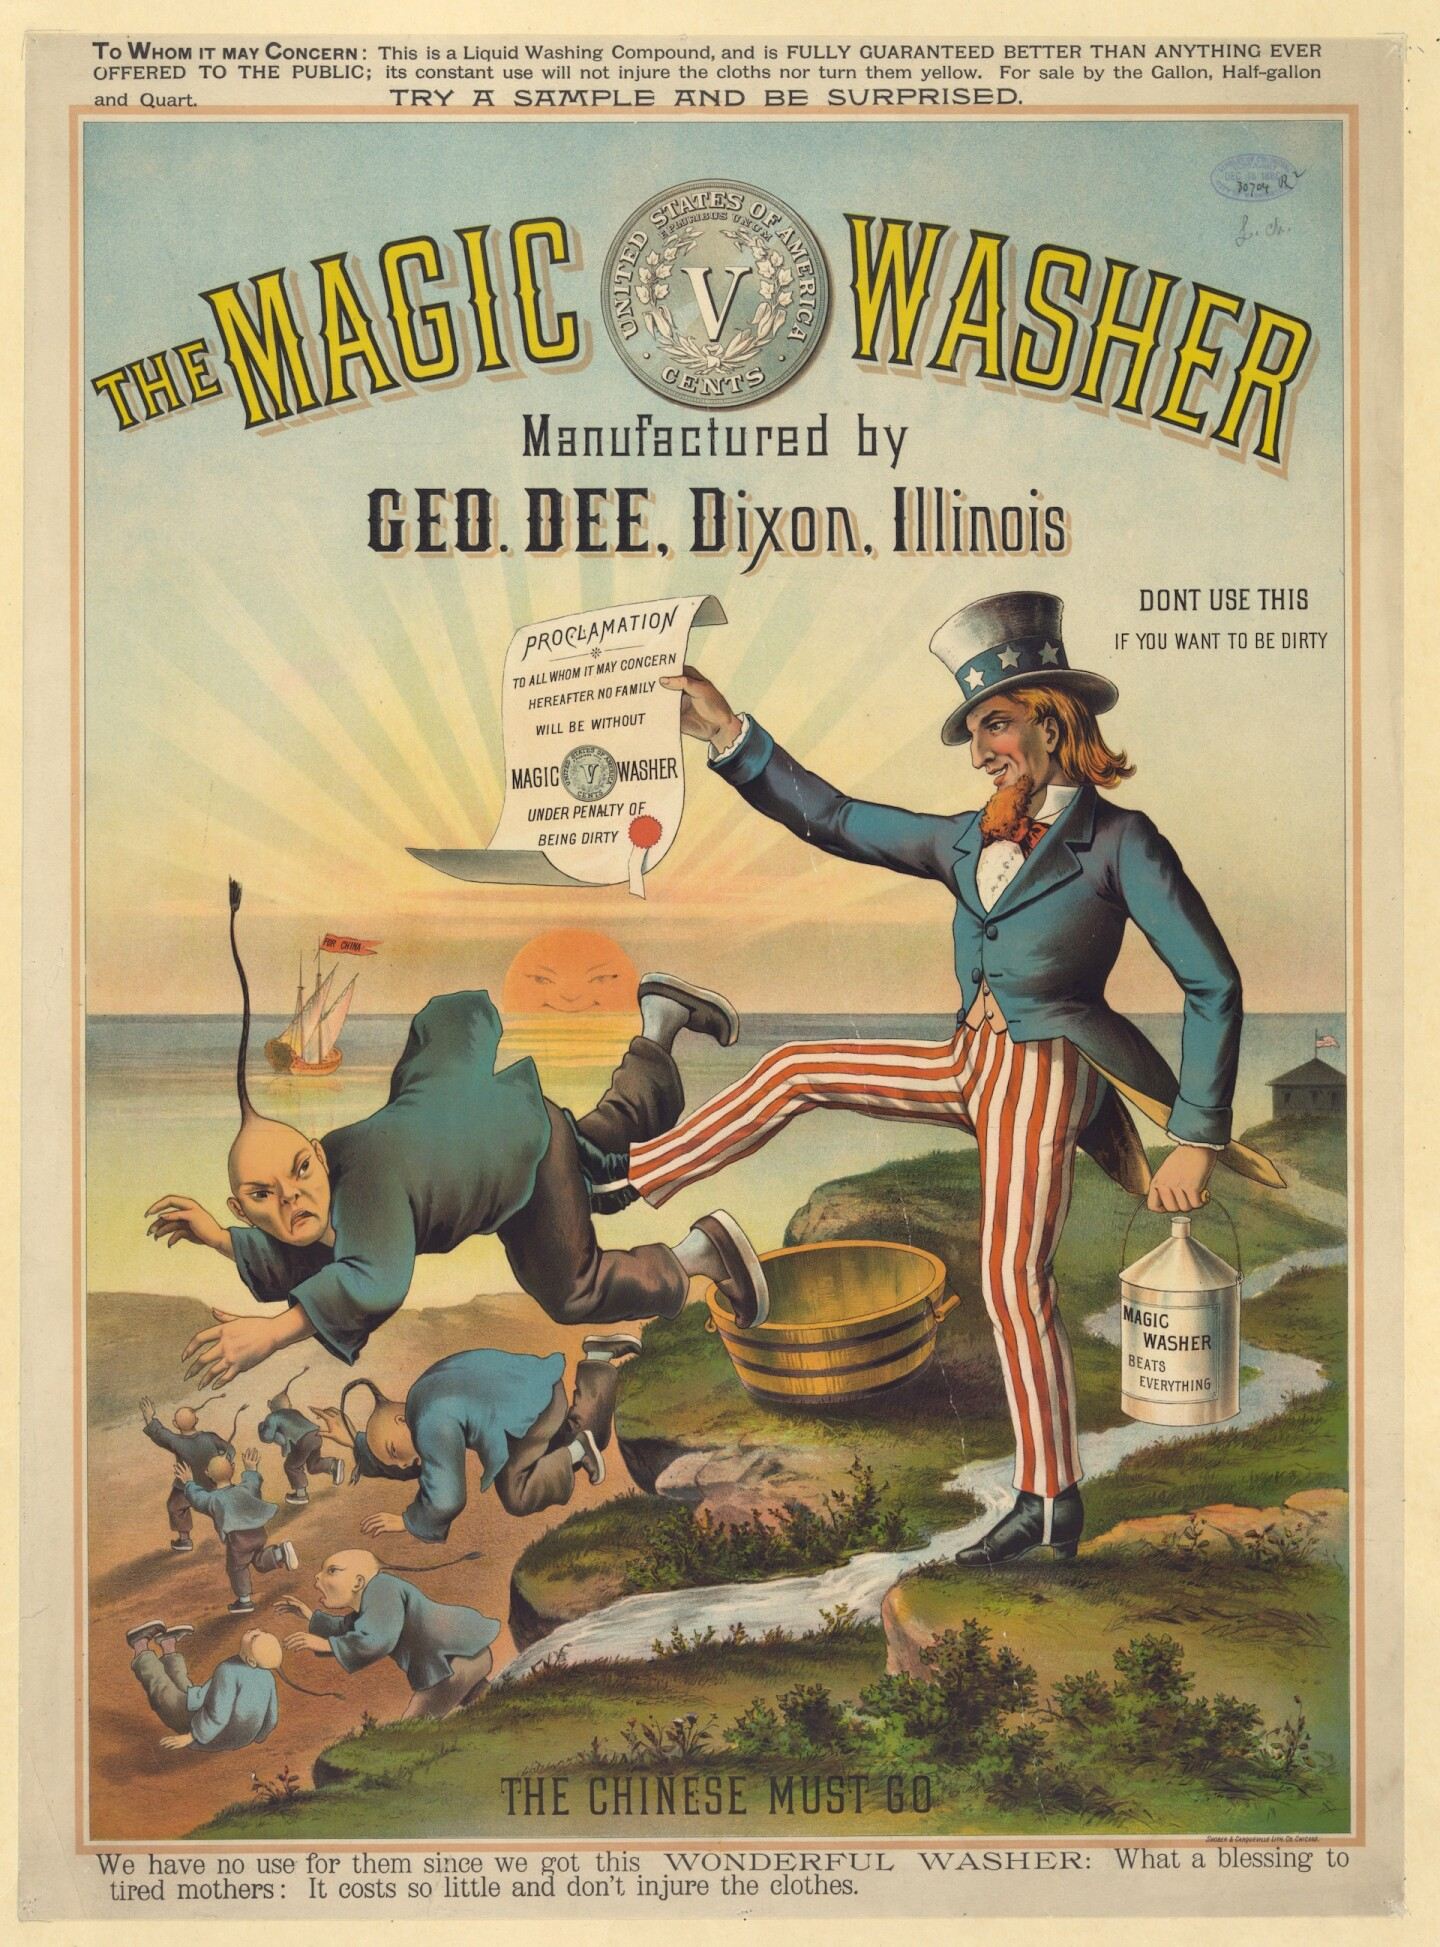 The magic washer, manufactured by Geo. Dee, Dixon, Illinois. The Chinese must go